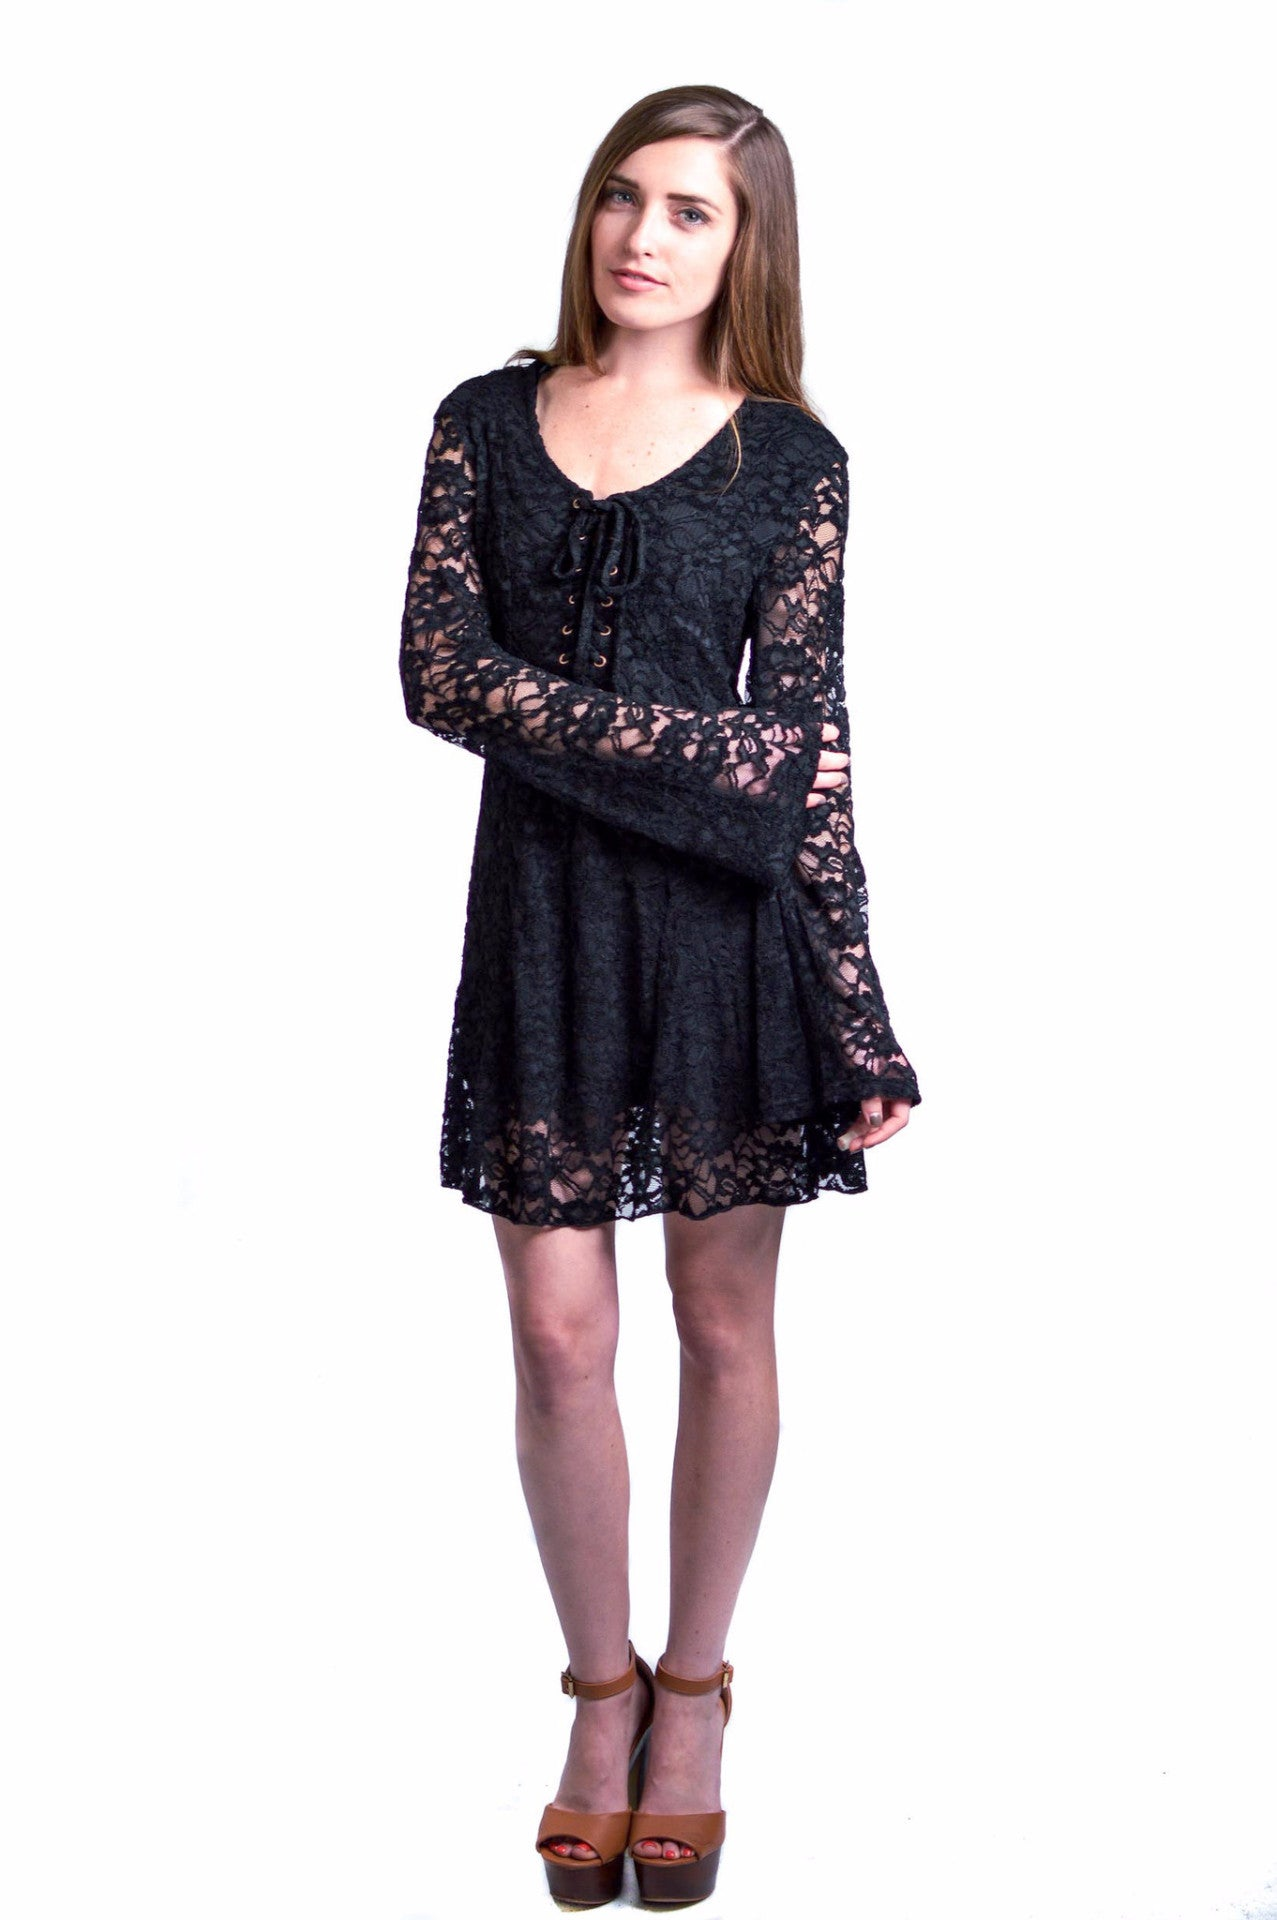 Someday's Lovin' Lucid Lace Dress